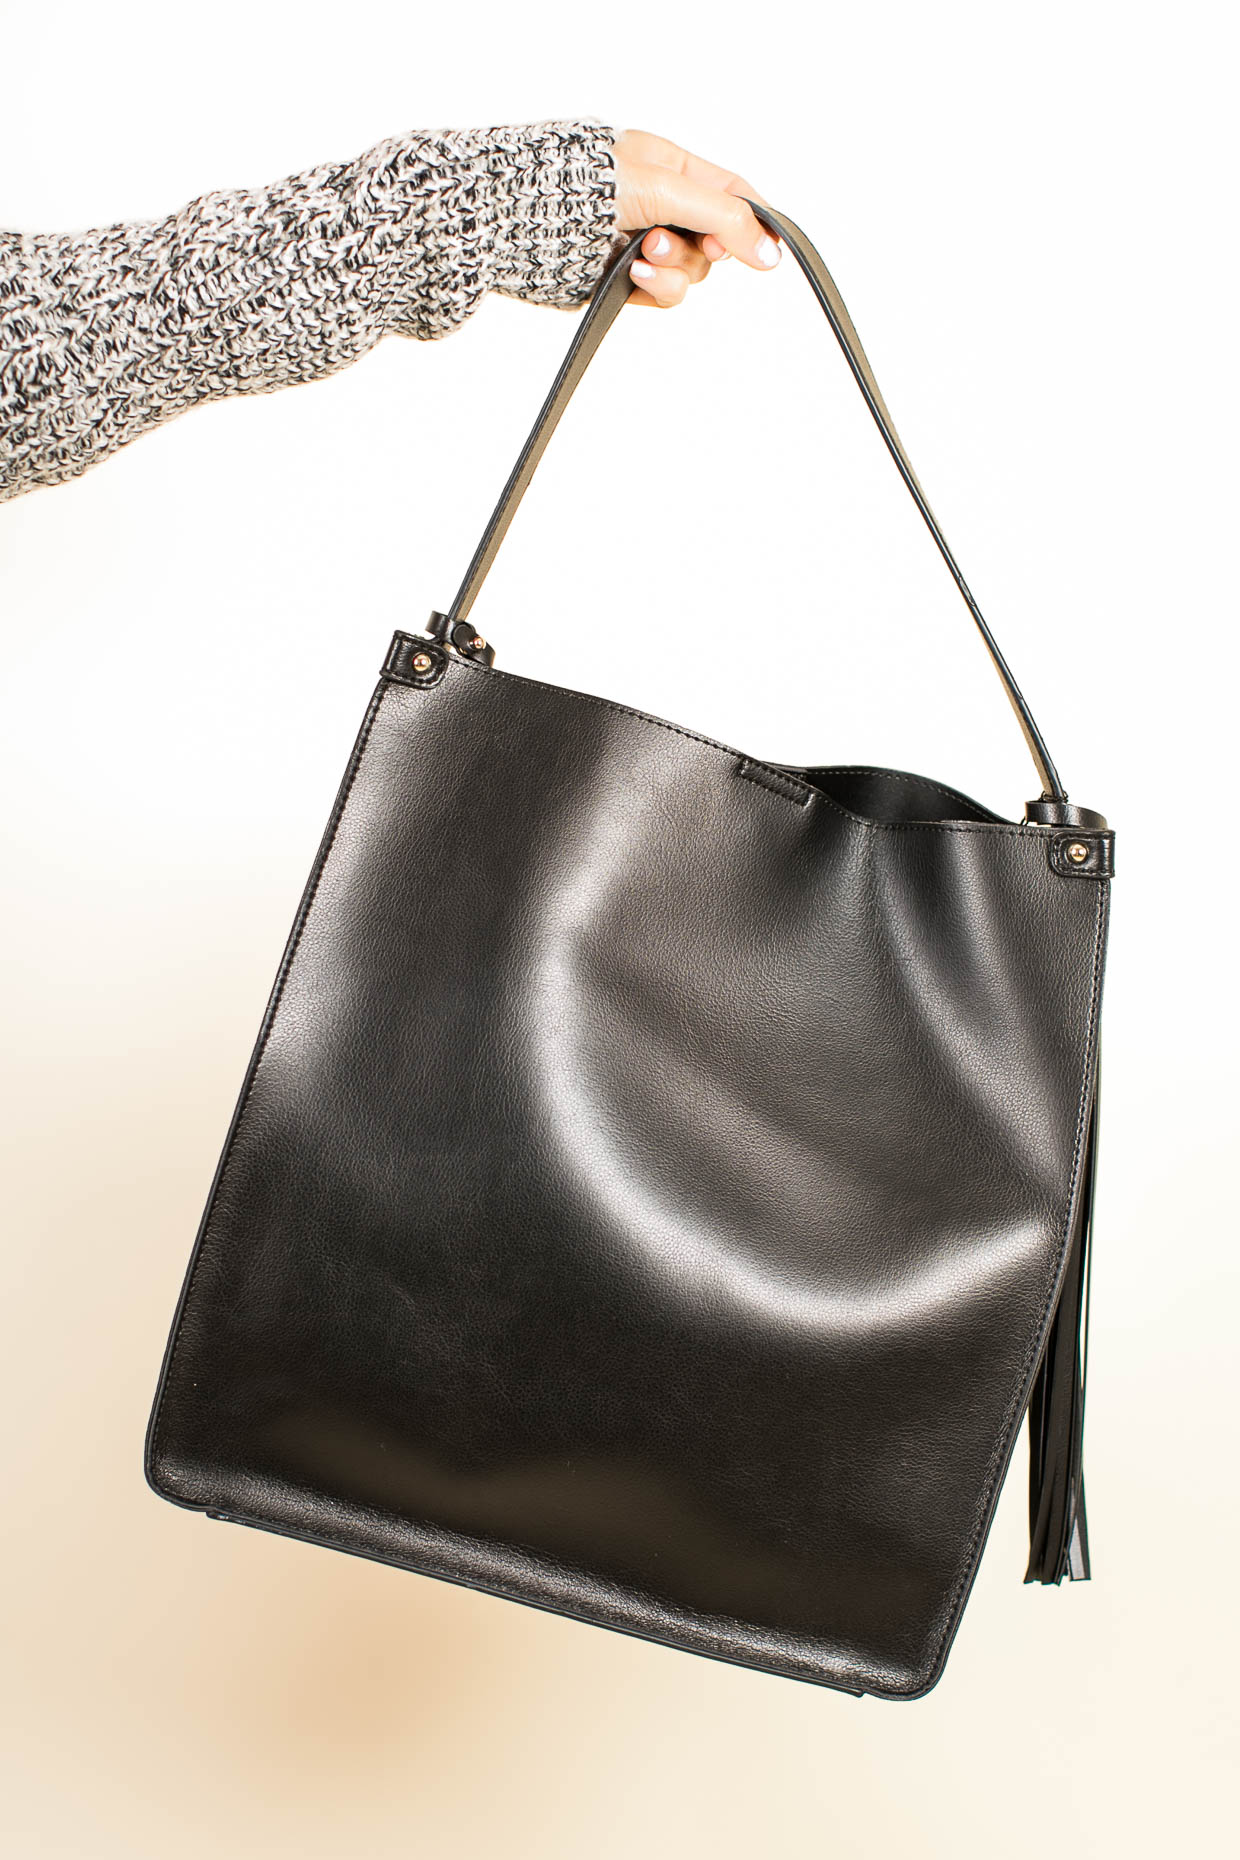 Fashion blogger The Darling Detail wears Sole Society Karlie Faux Leather Bucket Bag